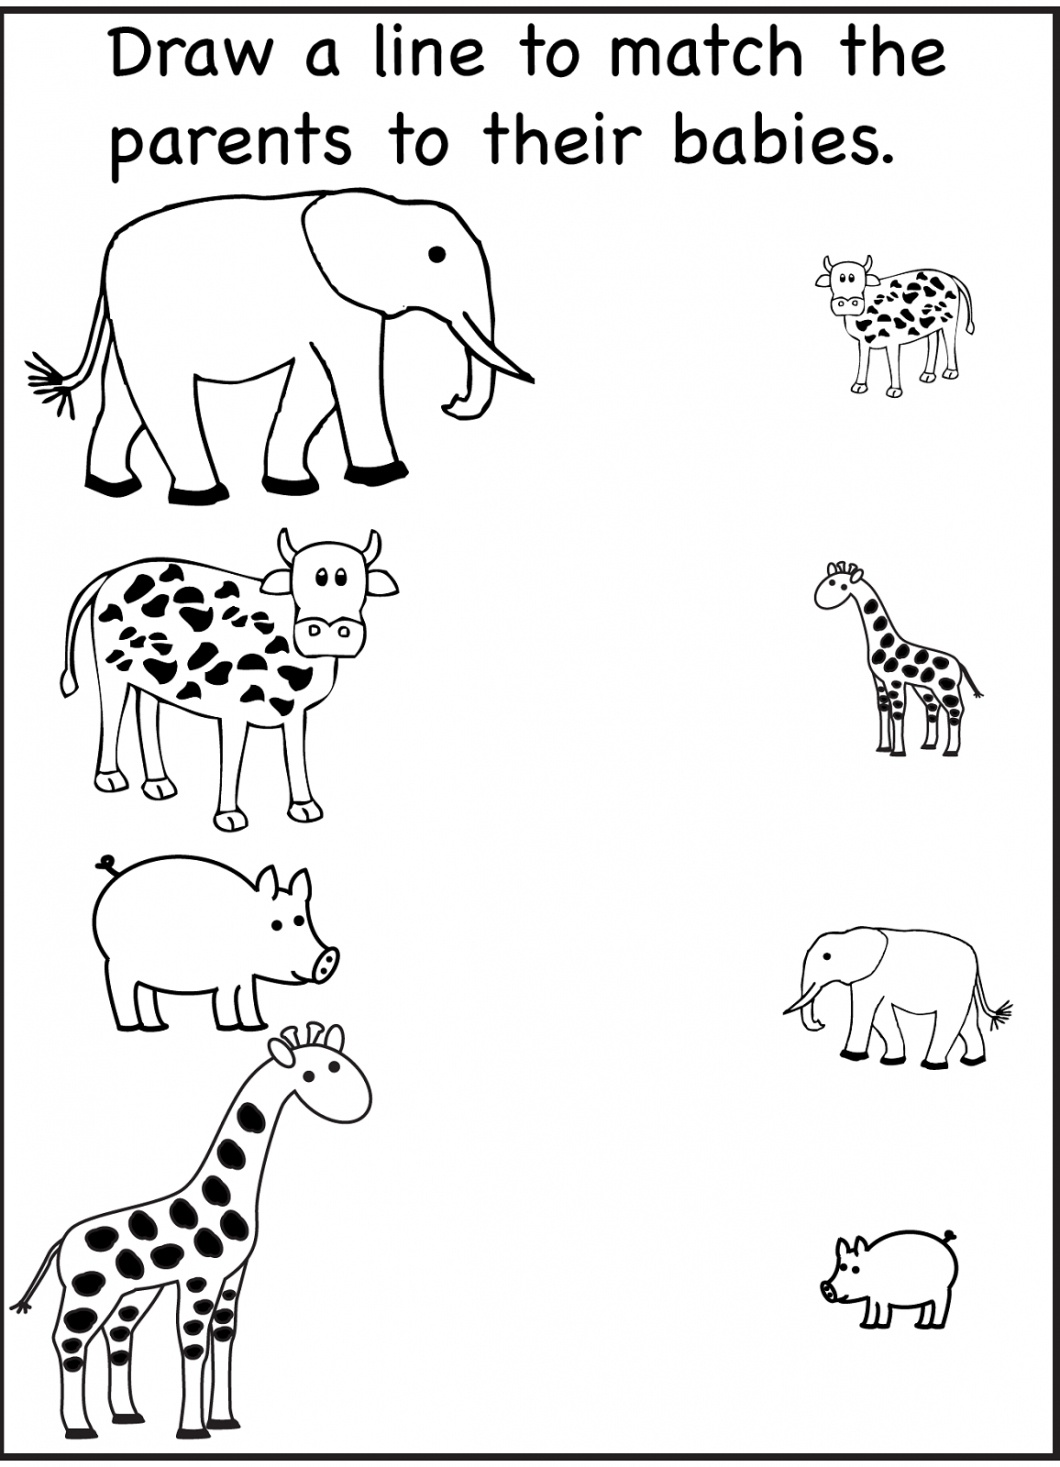 Coloring Ideas : Alphabet Coloring Pages Free Globalchin Year Old - Free Printable Learning Pages